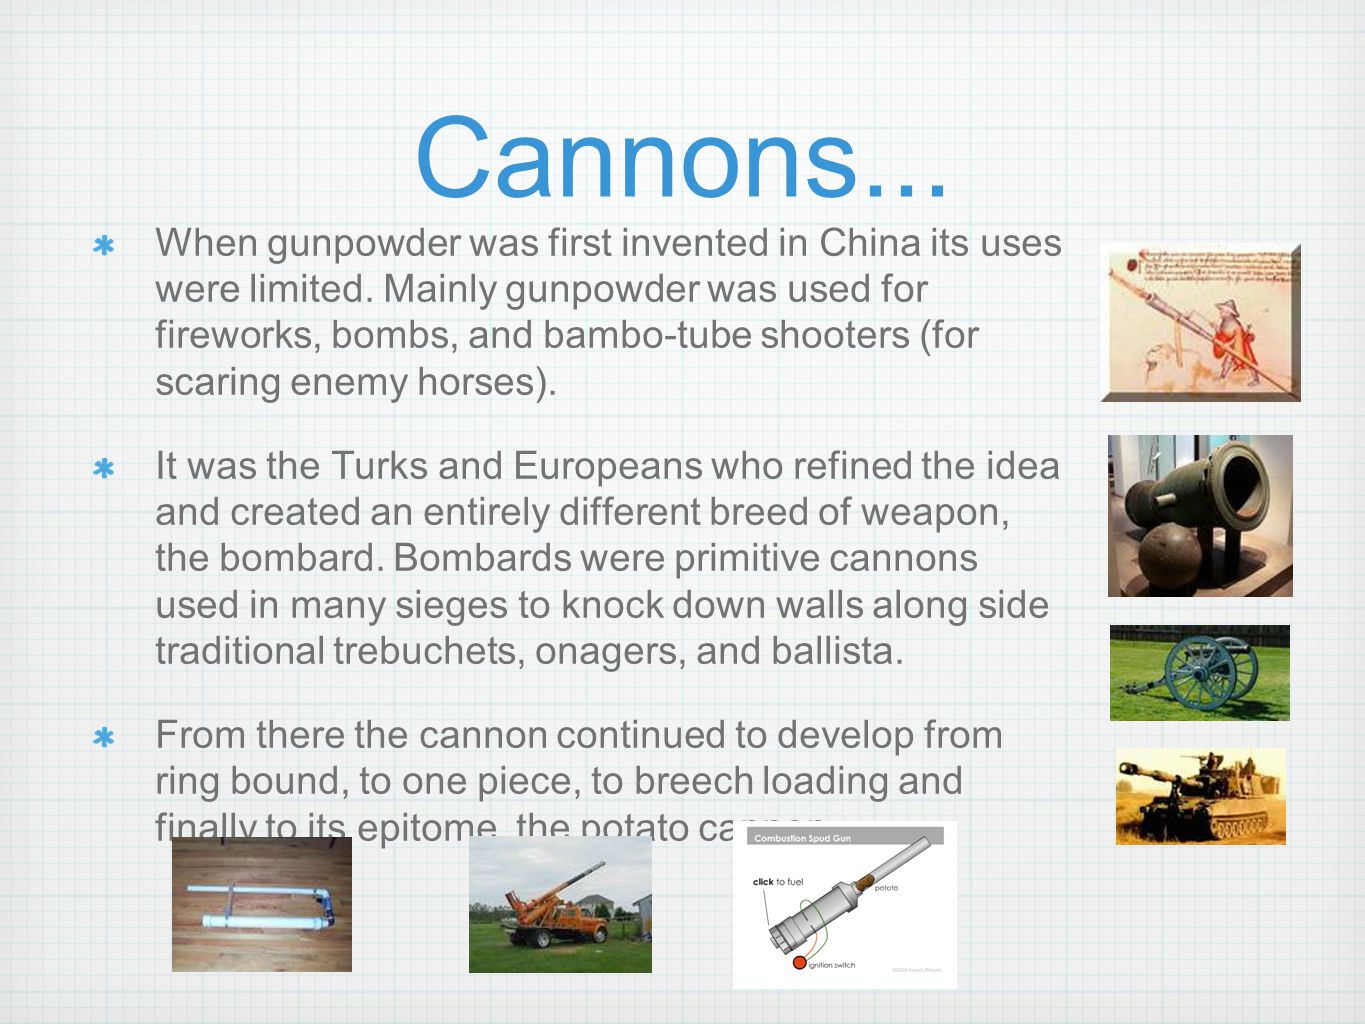 Cannons... When gunpowder was first invented in China its uses were limited. Mainly gunpowder was used for fireworks, bombs, and bambo-tube shooters (